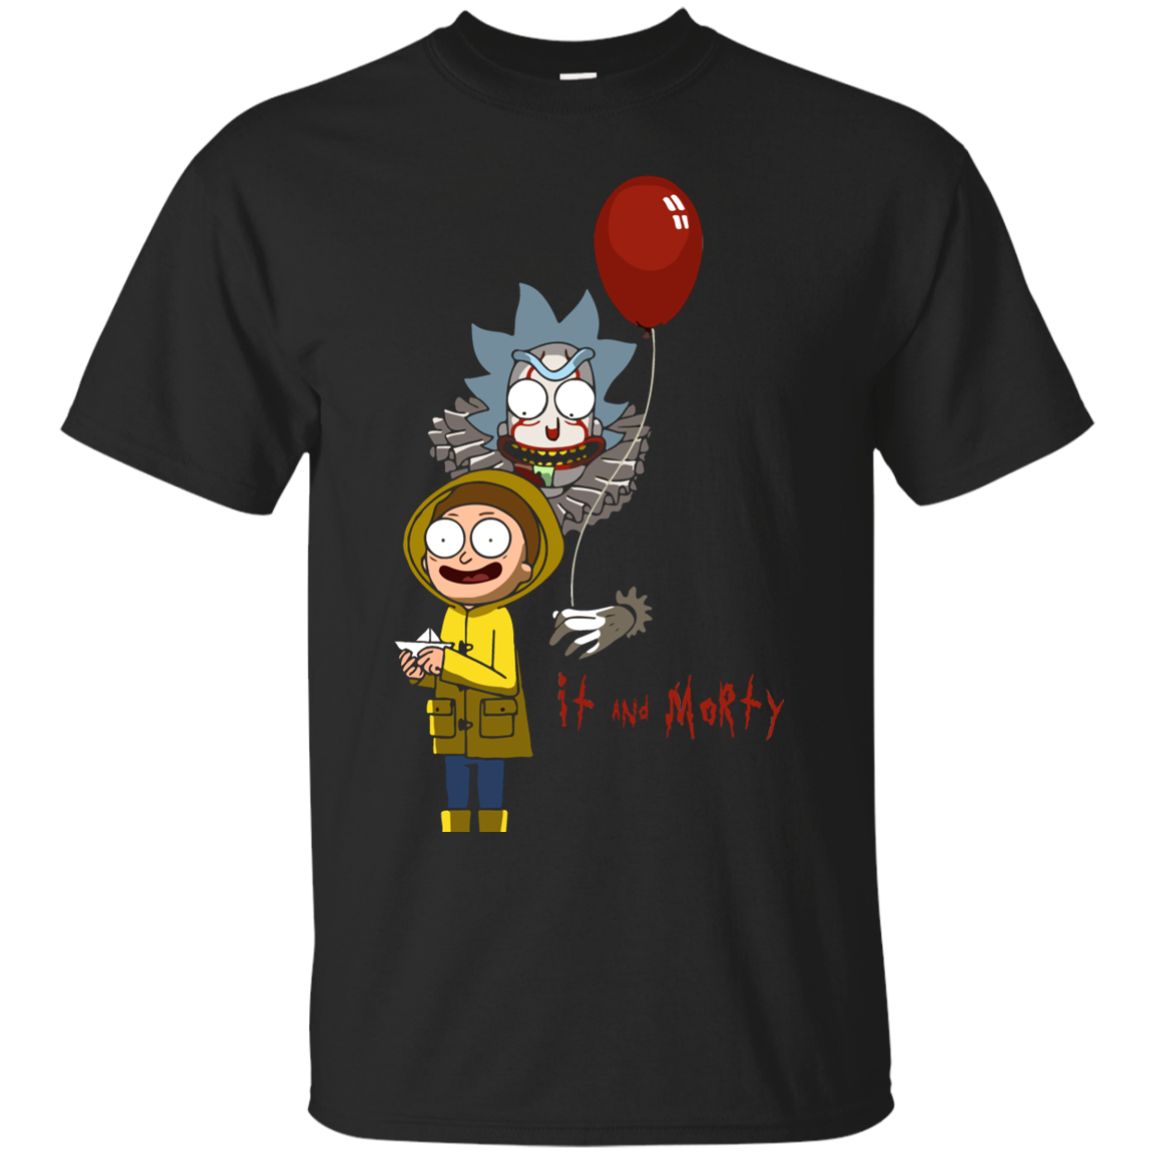 Rick and Morty - IT movie and Morty tshirt, vneck, tank, hoodie